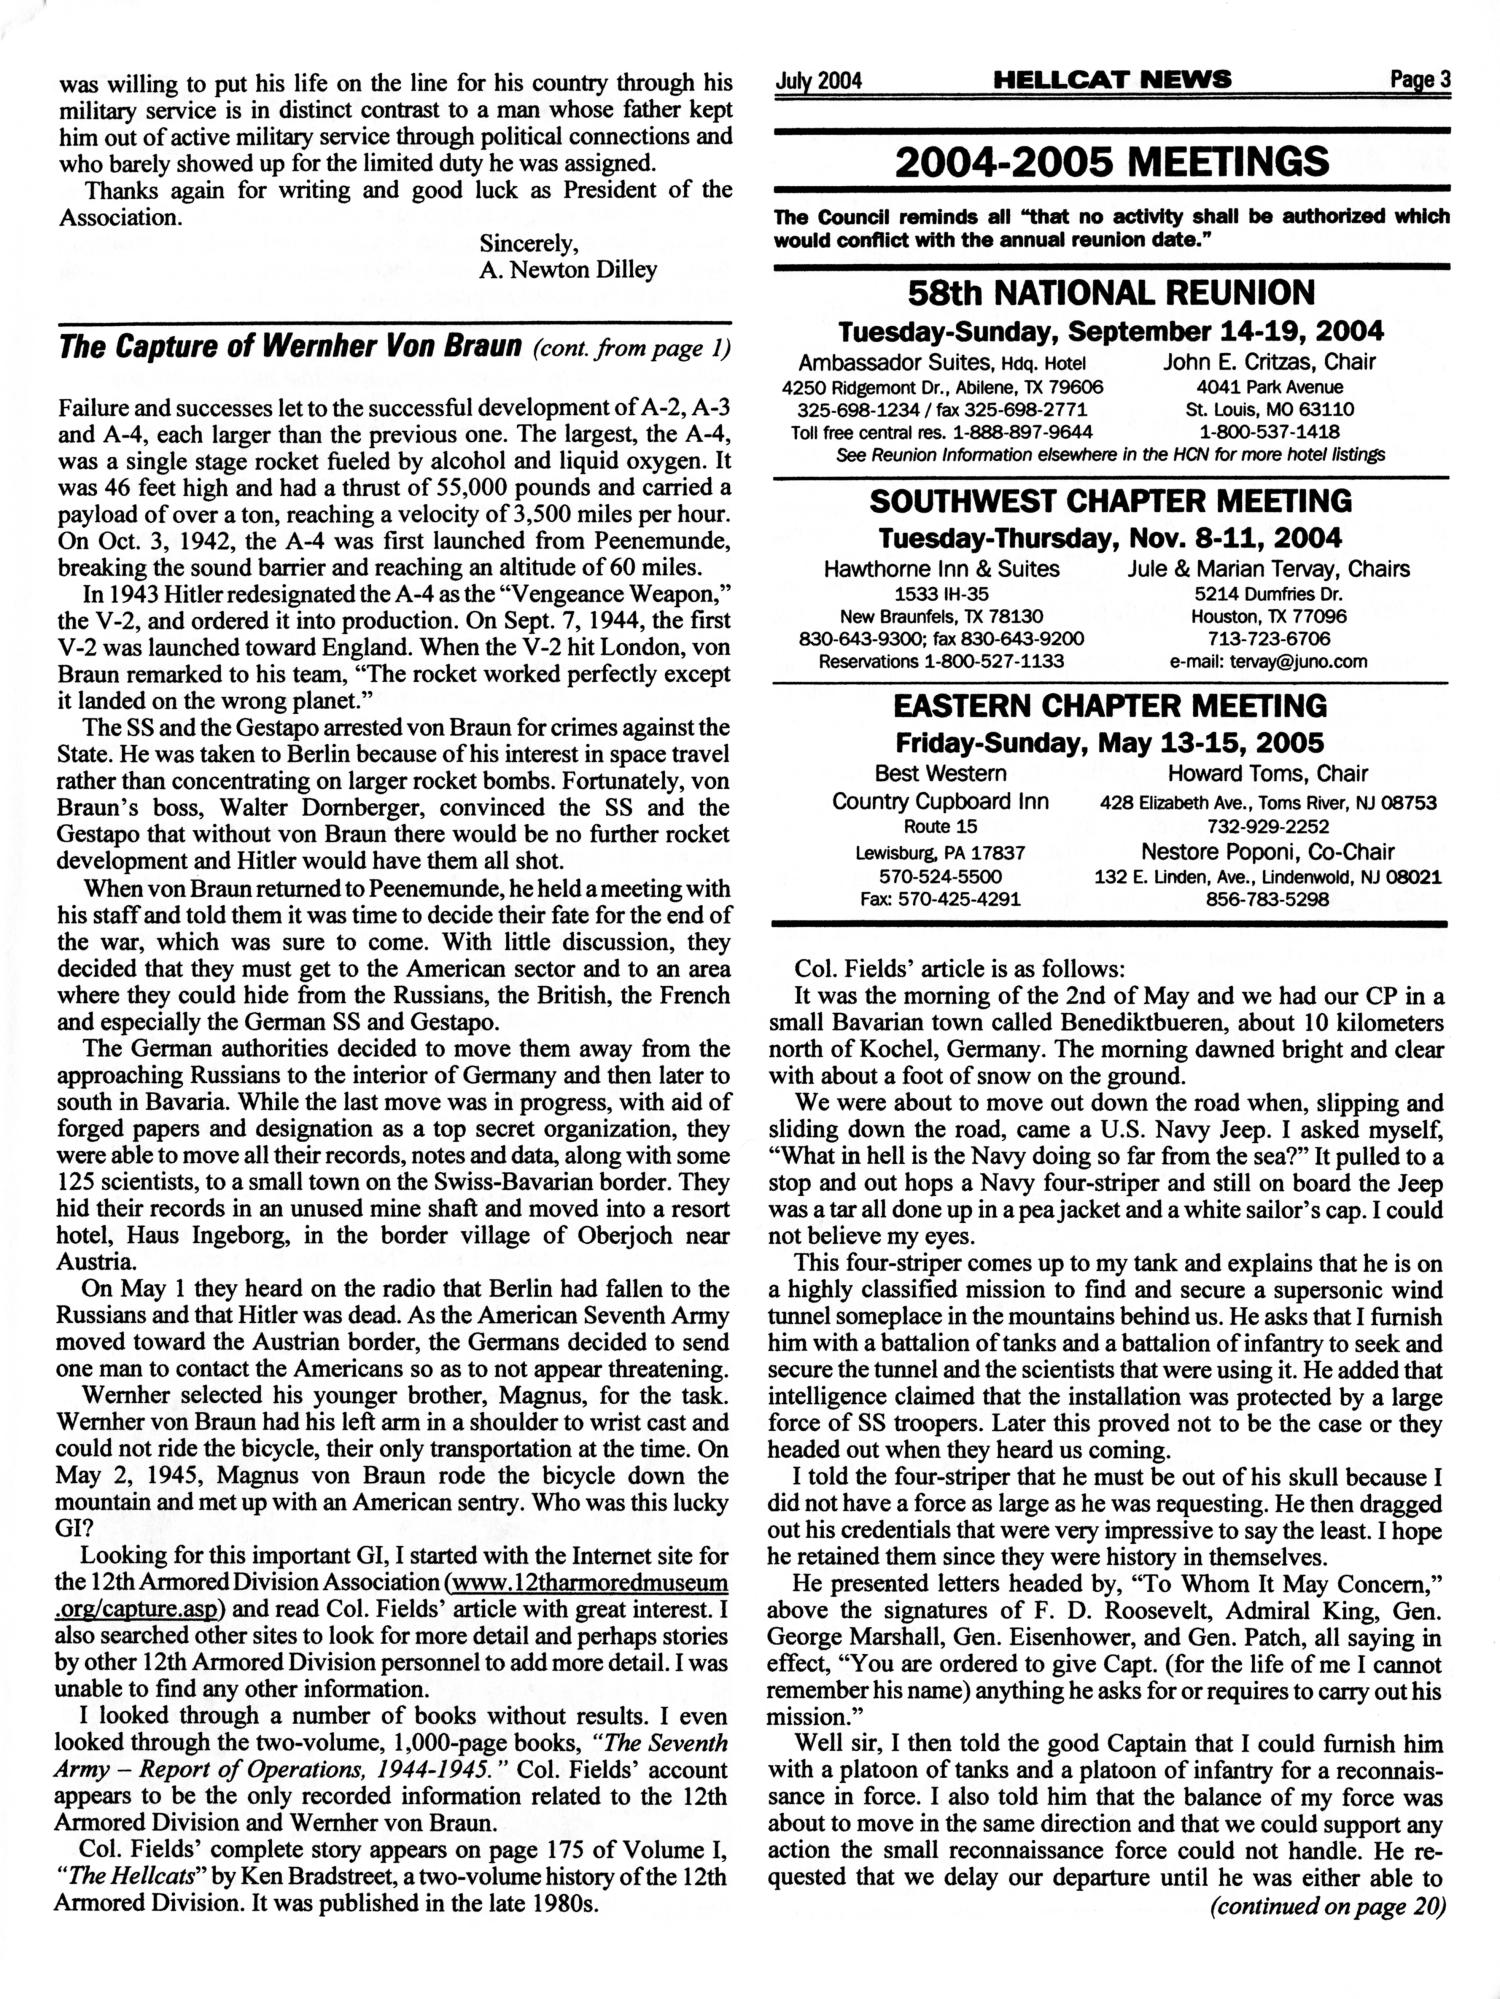 Hellcat News, (Fullerton, Calif.), Vol. 57, No. 11, Ed. 1, July 2004                                                                                                      [Sequence #]: 3 of 20